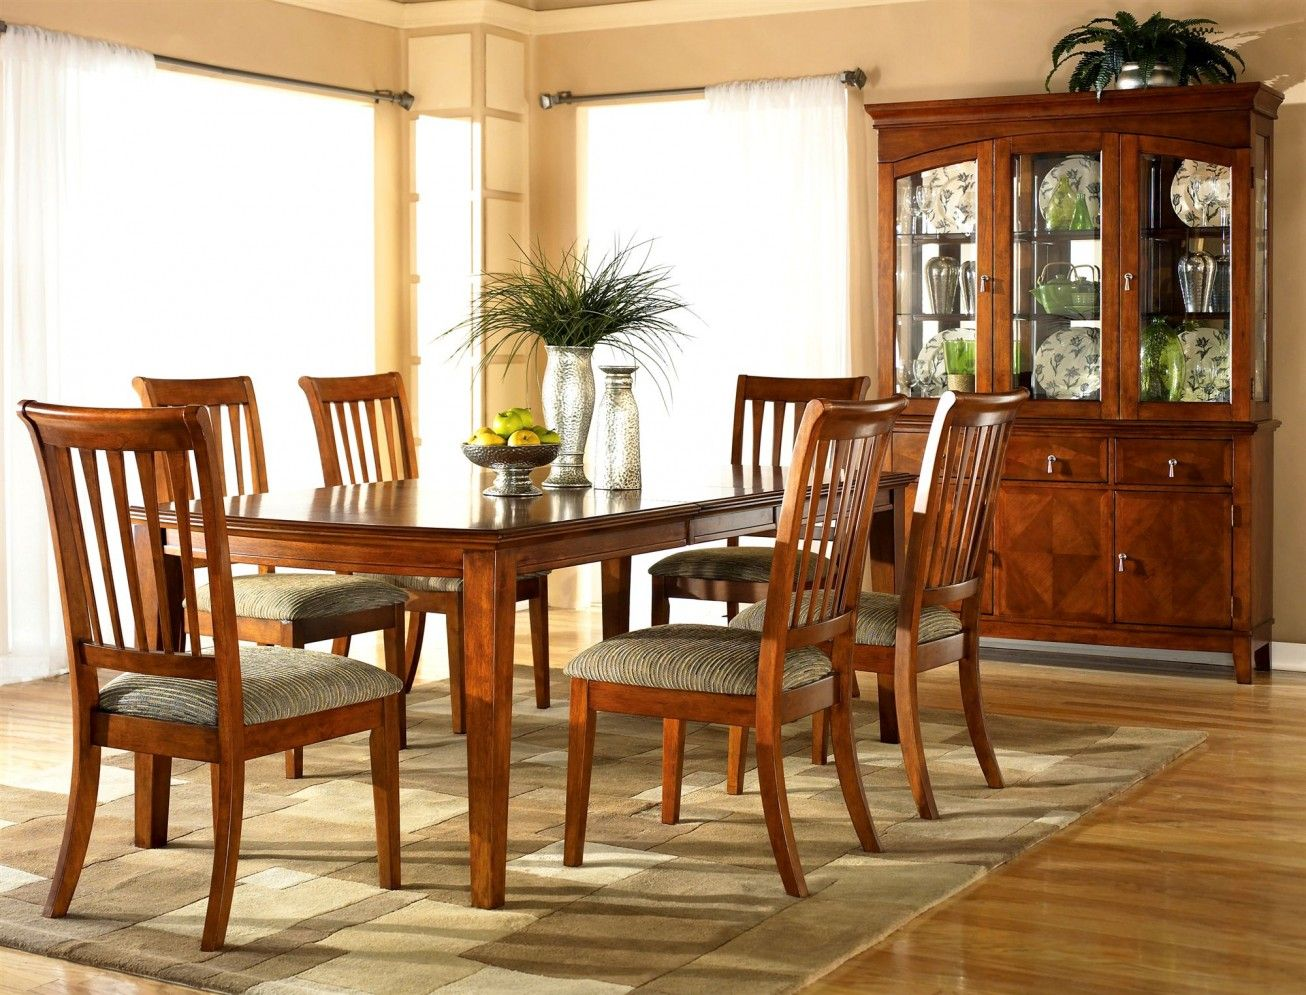 Wooden Dining Room Set  Google Search  Post Apocalyptic Gorgeous Cherry Wood Dining Room Set Inspiration